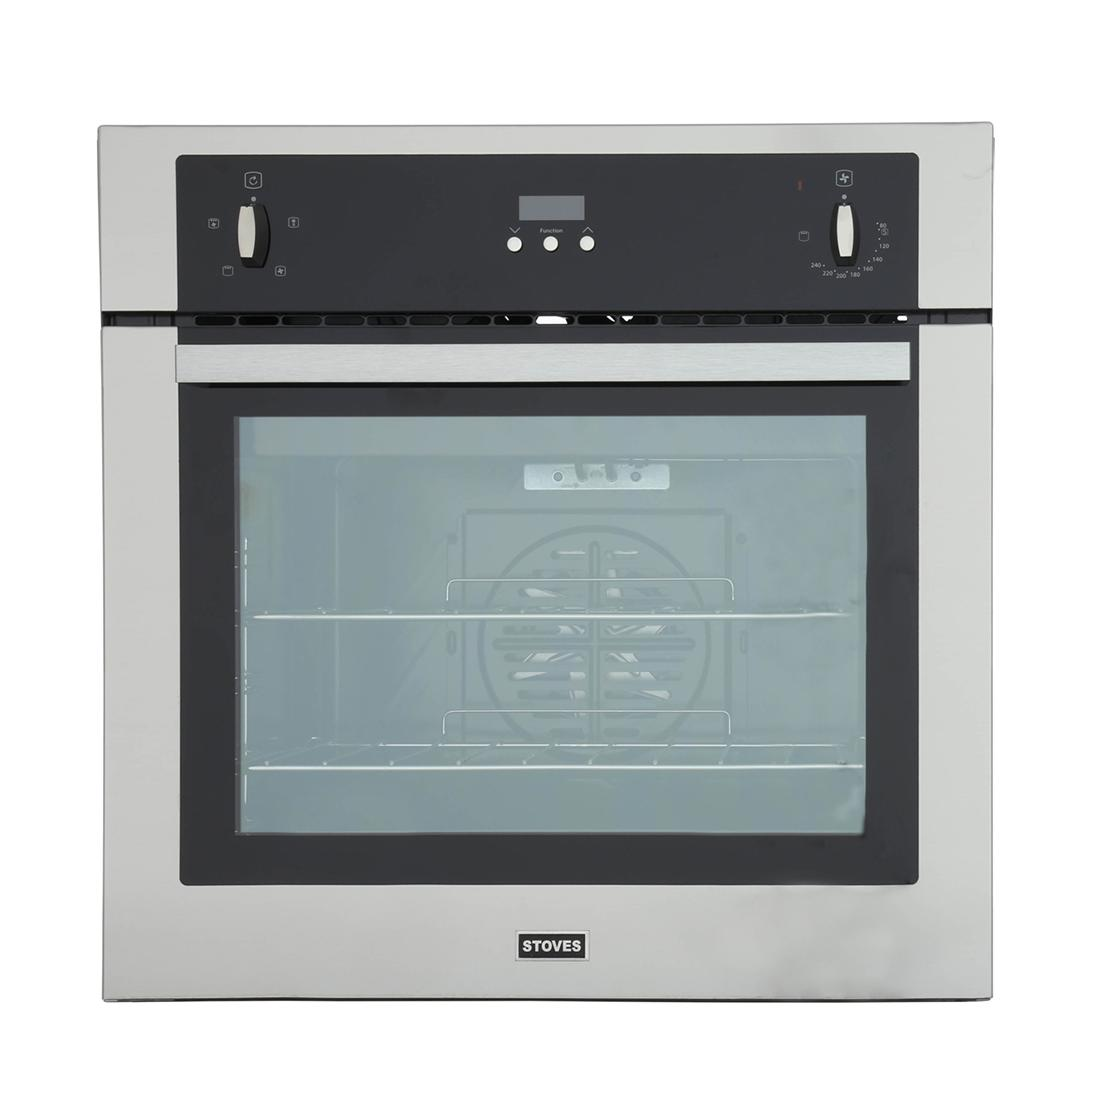 Stoves SEB600FP Stainless Steel Single Built In Electric Oven